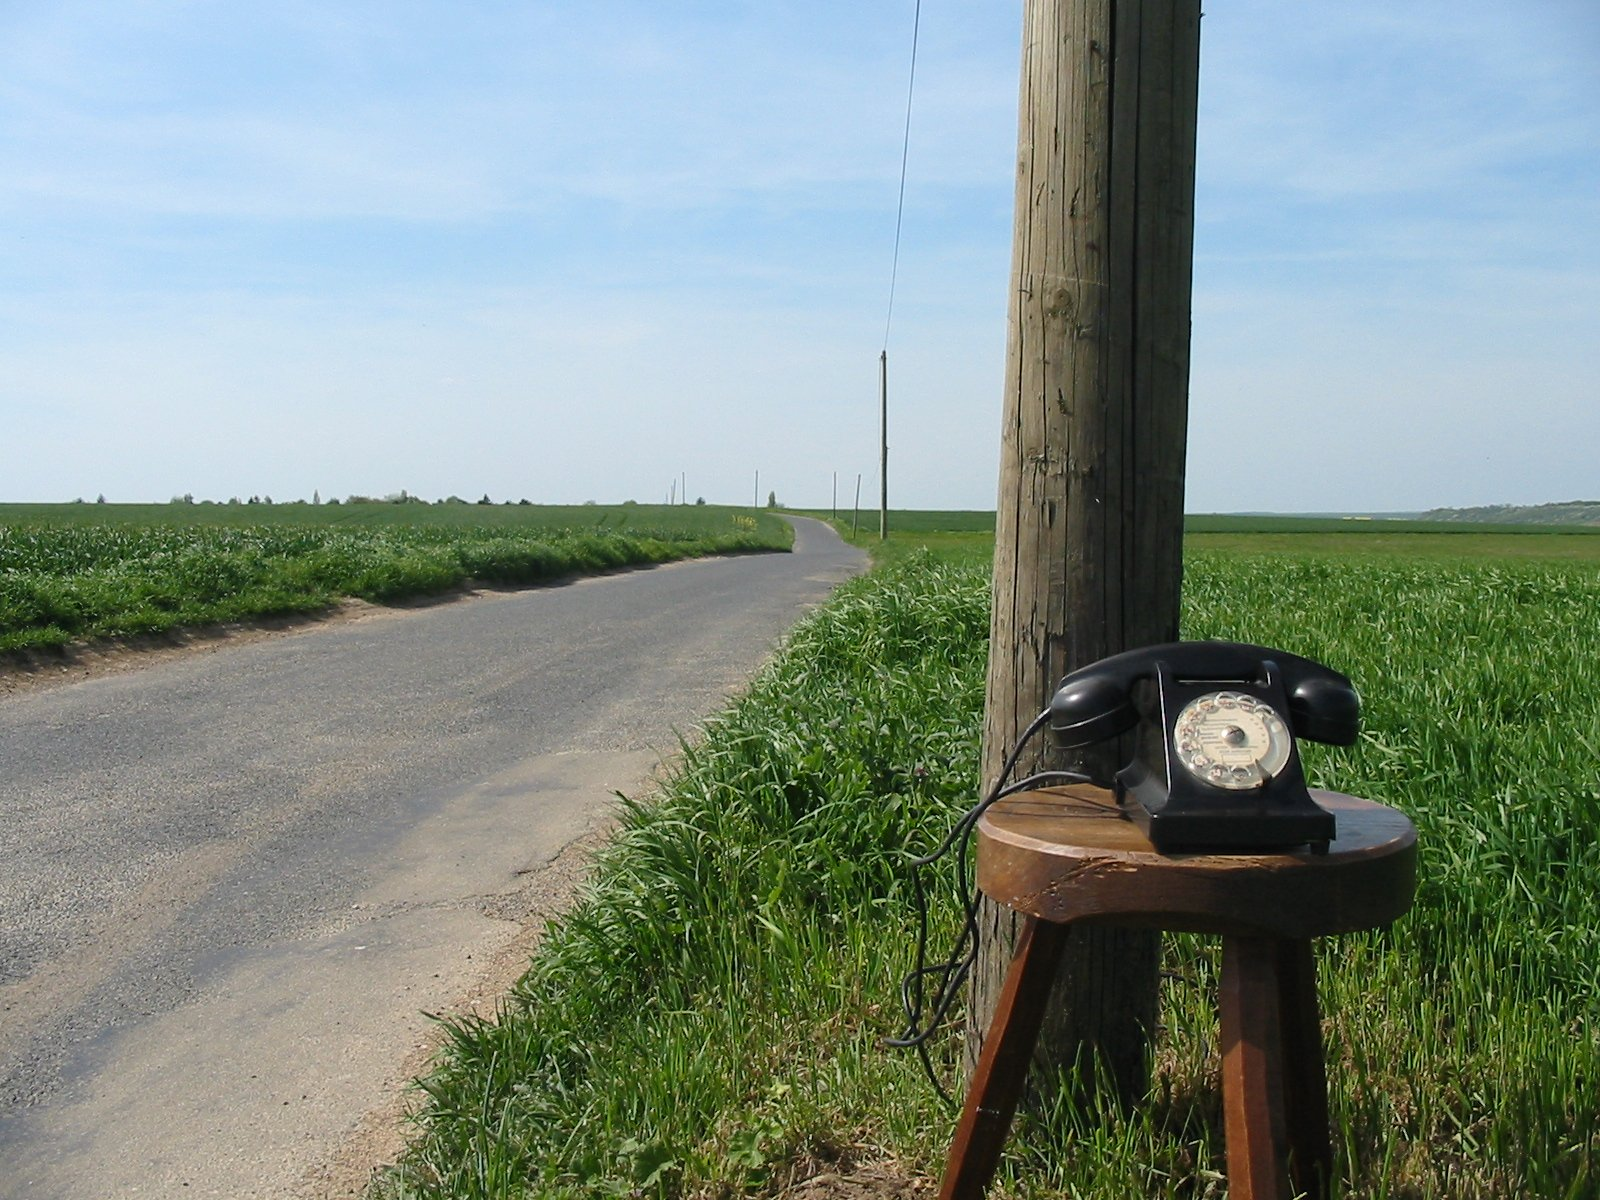 Old Fashion Phone Hooked Up to Telephone Pole in the Country